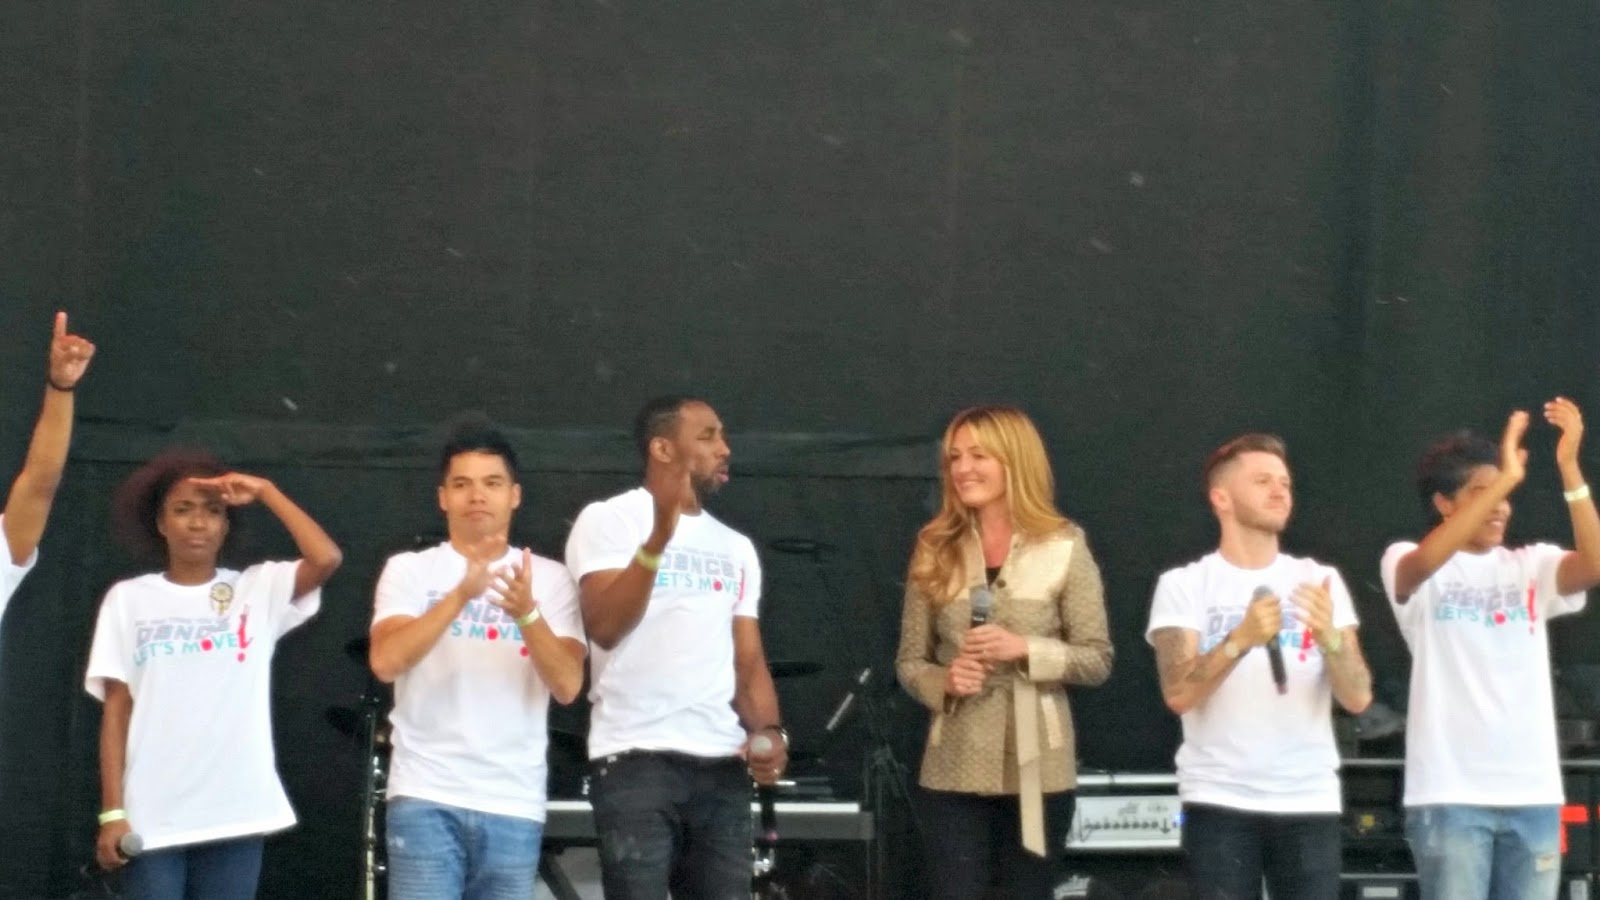 2015 White House Easter Egg Roll, DC events, DC monuments, The White House, Michelle Obama, President Obama, Cat Deeley, Travis Wall, Twitch